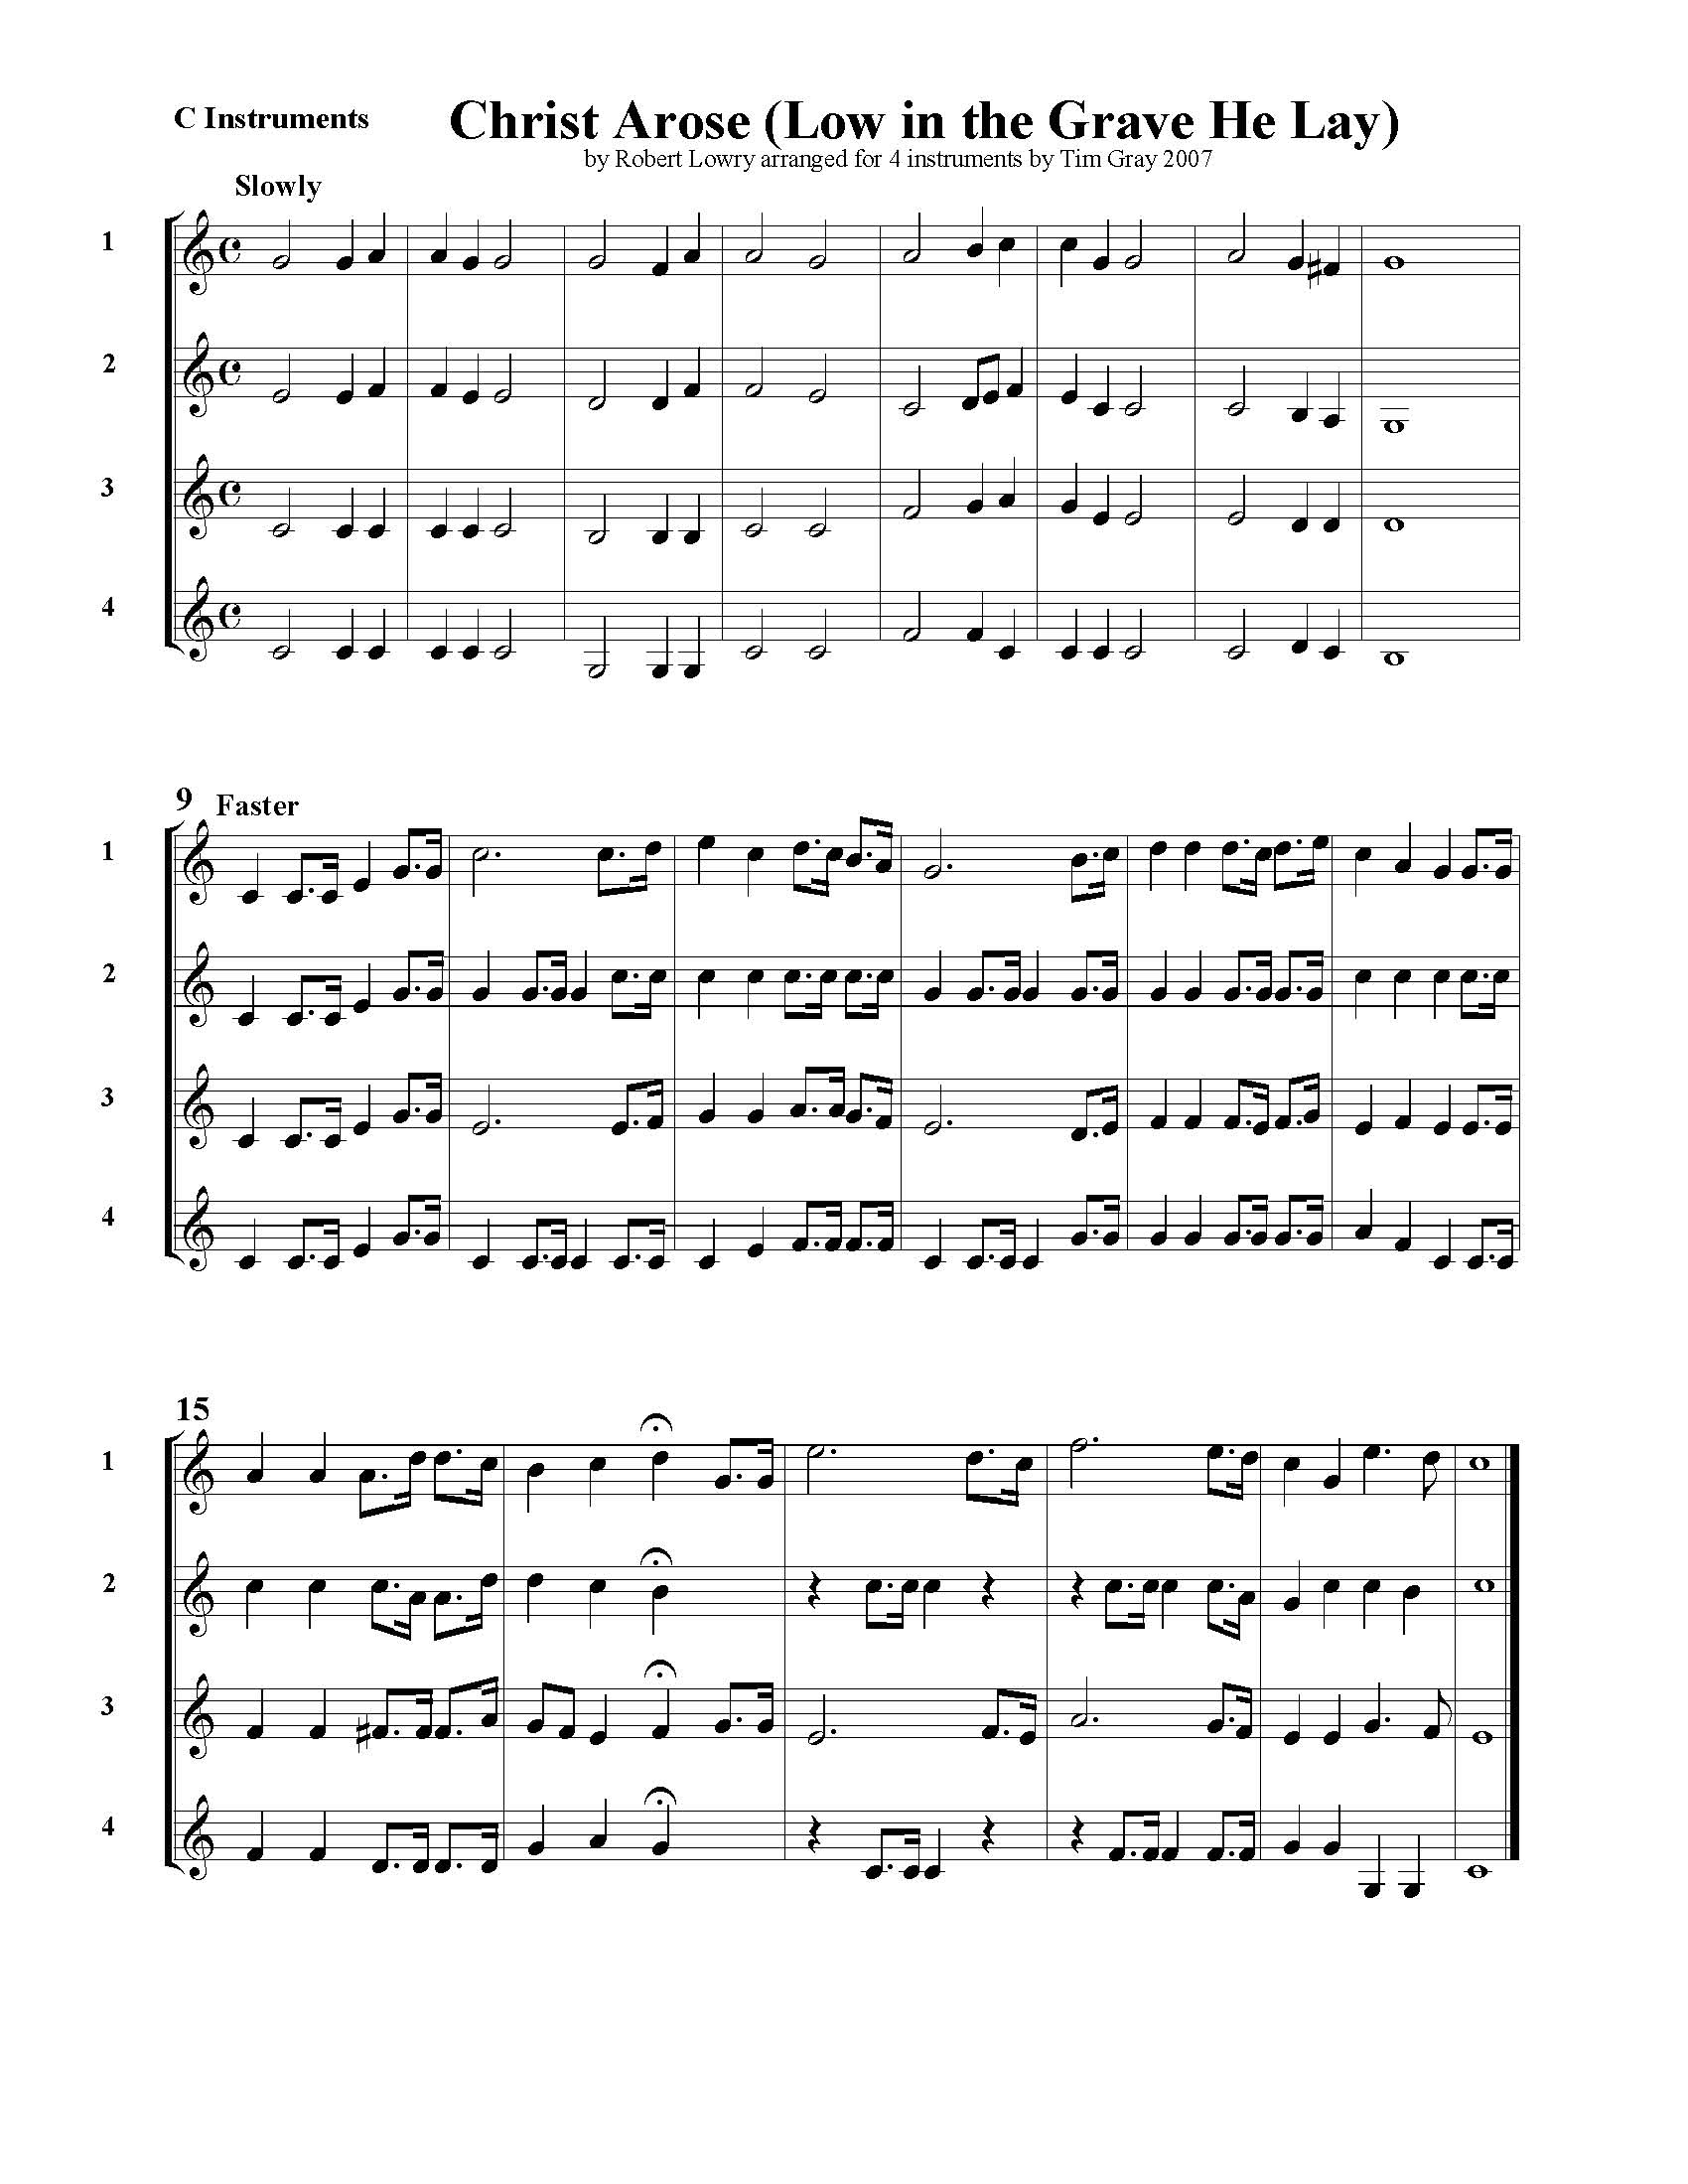 Christ Arose - 4 Hymns sample page at HonoringGodMusic.com